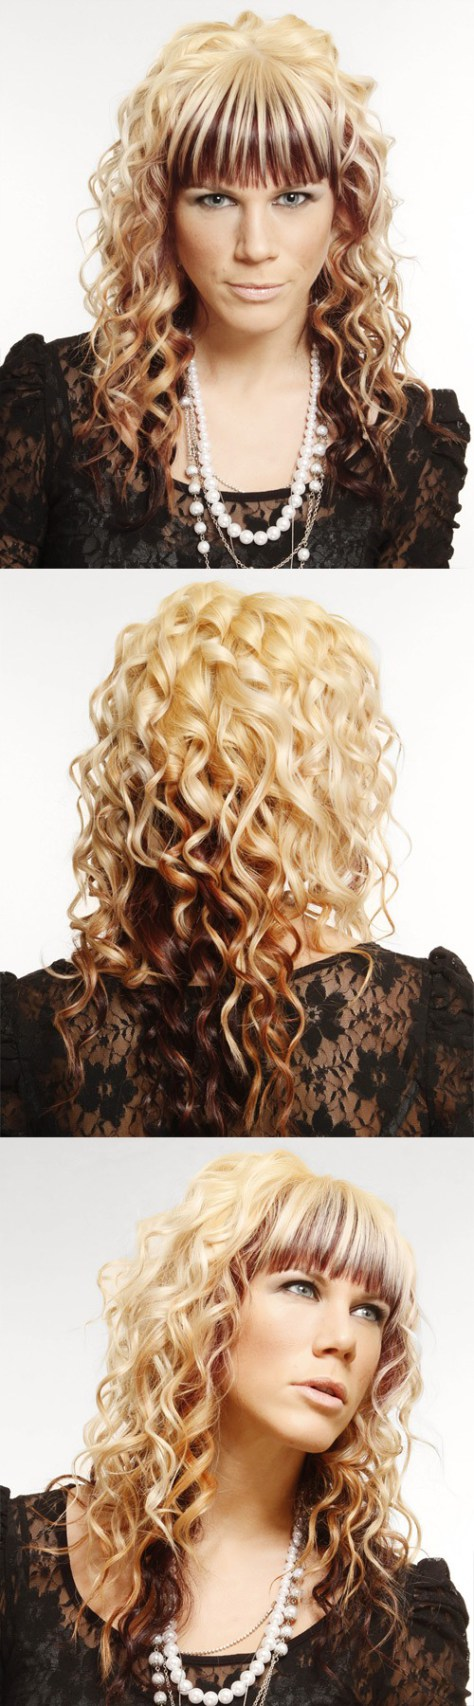 Light blond curly hair with bangs